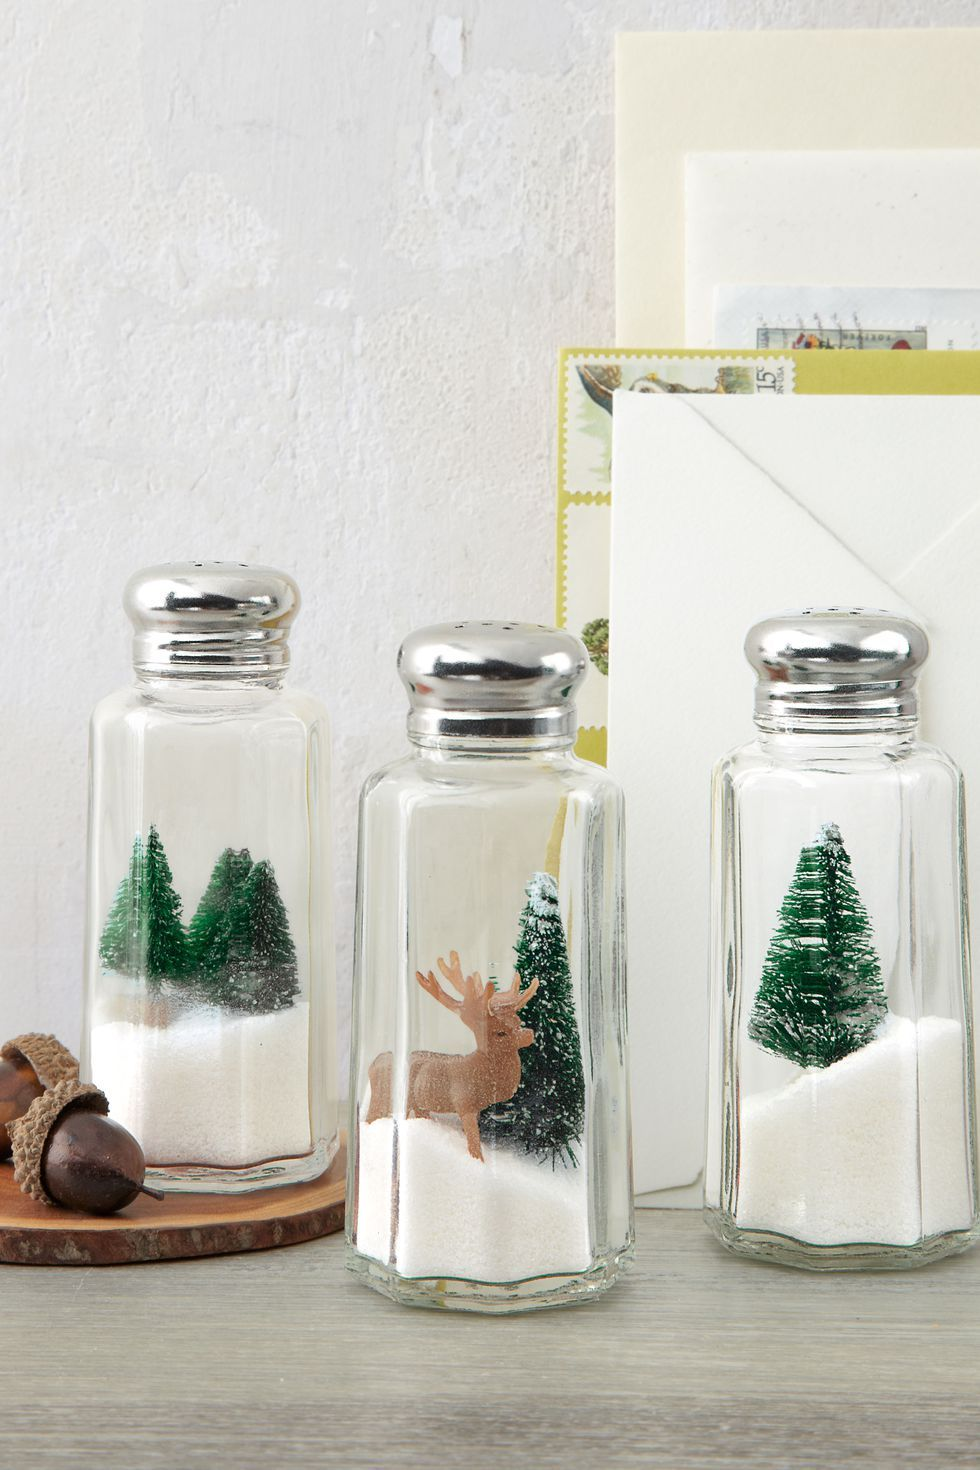 DIY Christmas Gifts That'll Mean so Much to Your Friends and Family #homemadechristmasgifts